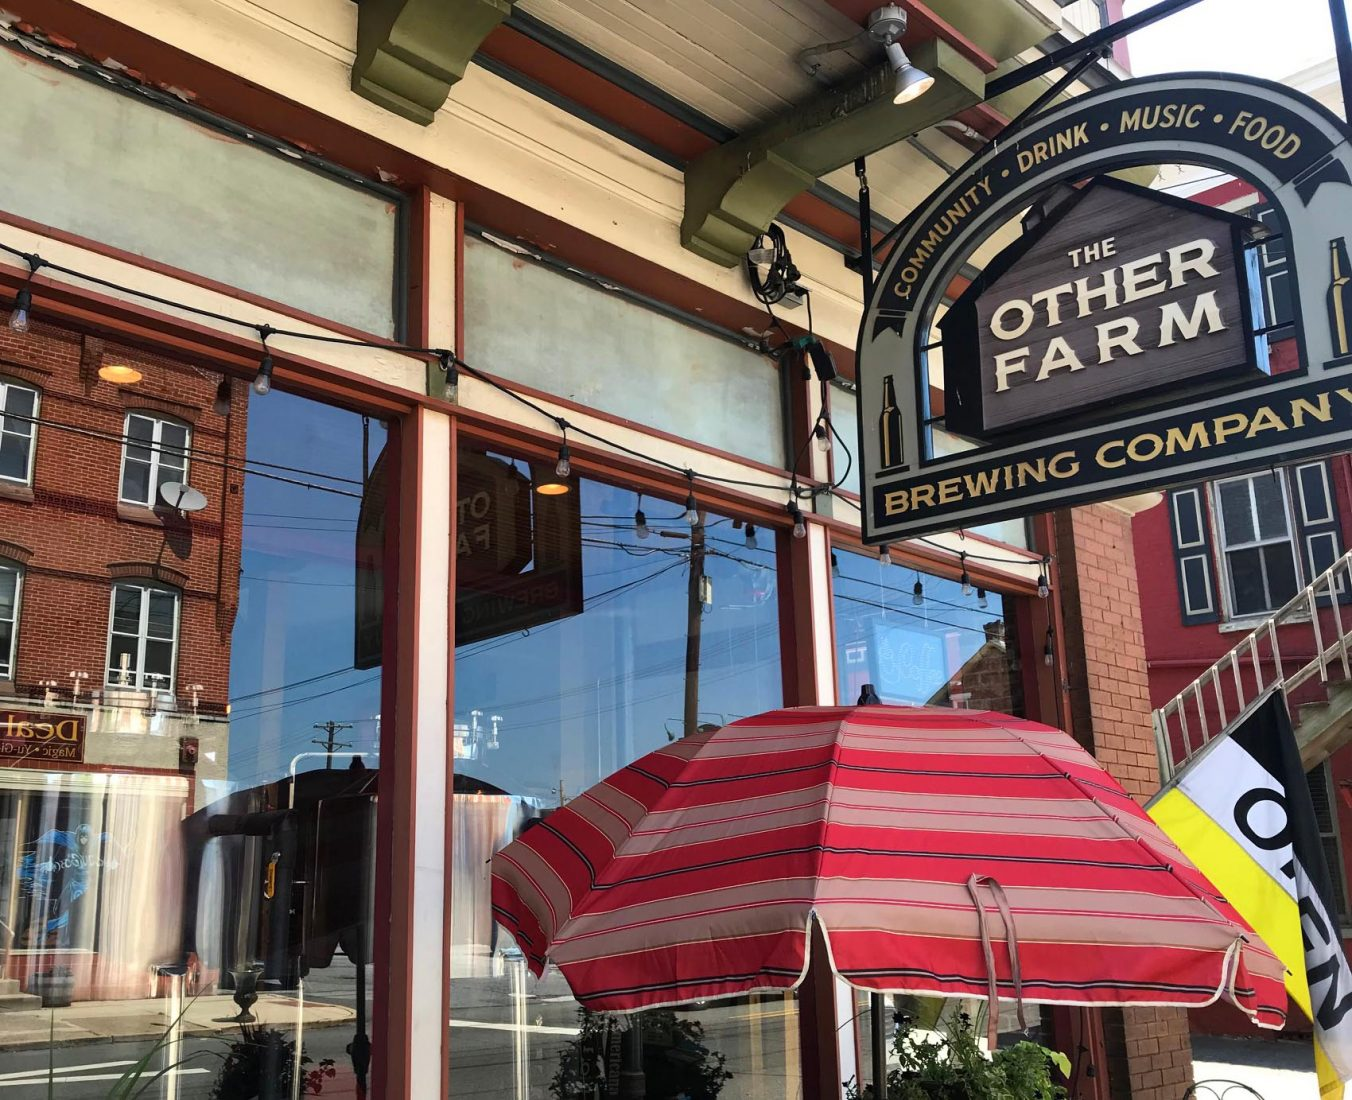 380. Other Farm Brewing, Boyertown PA, 2018